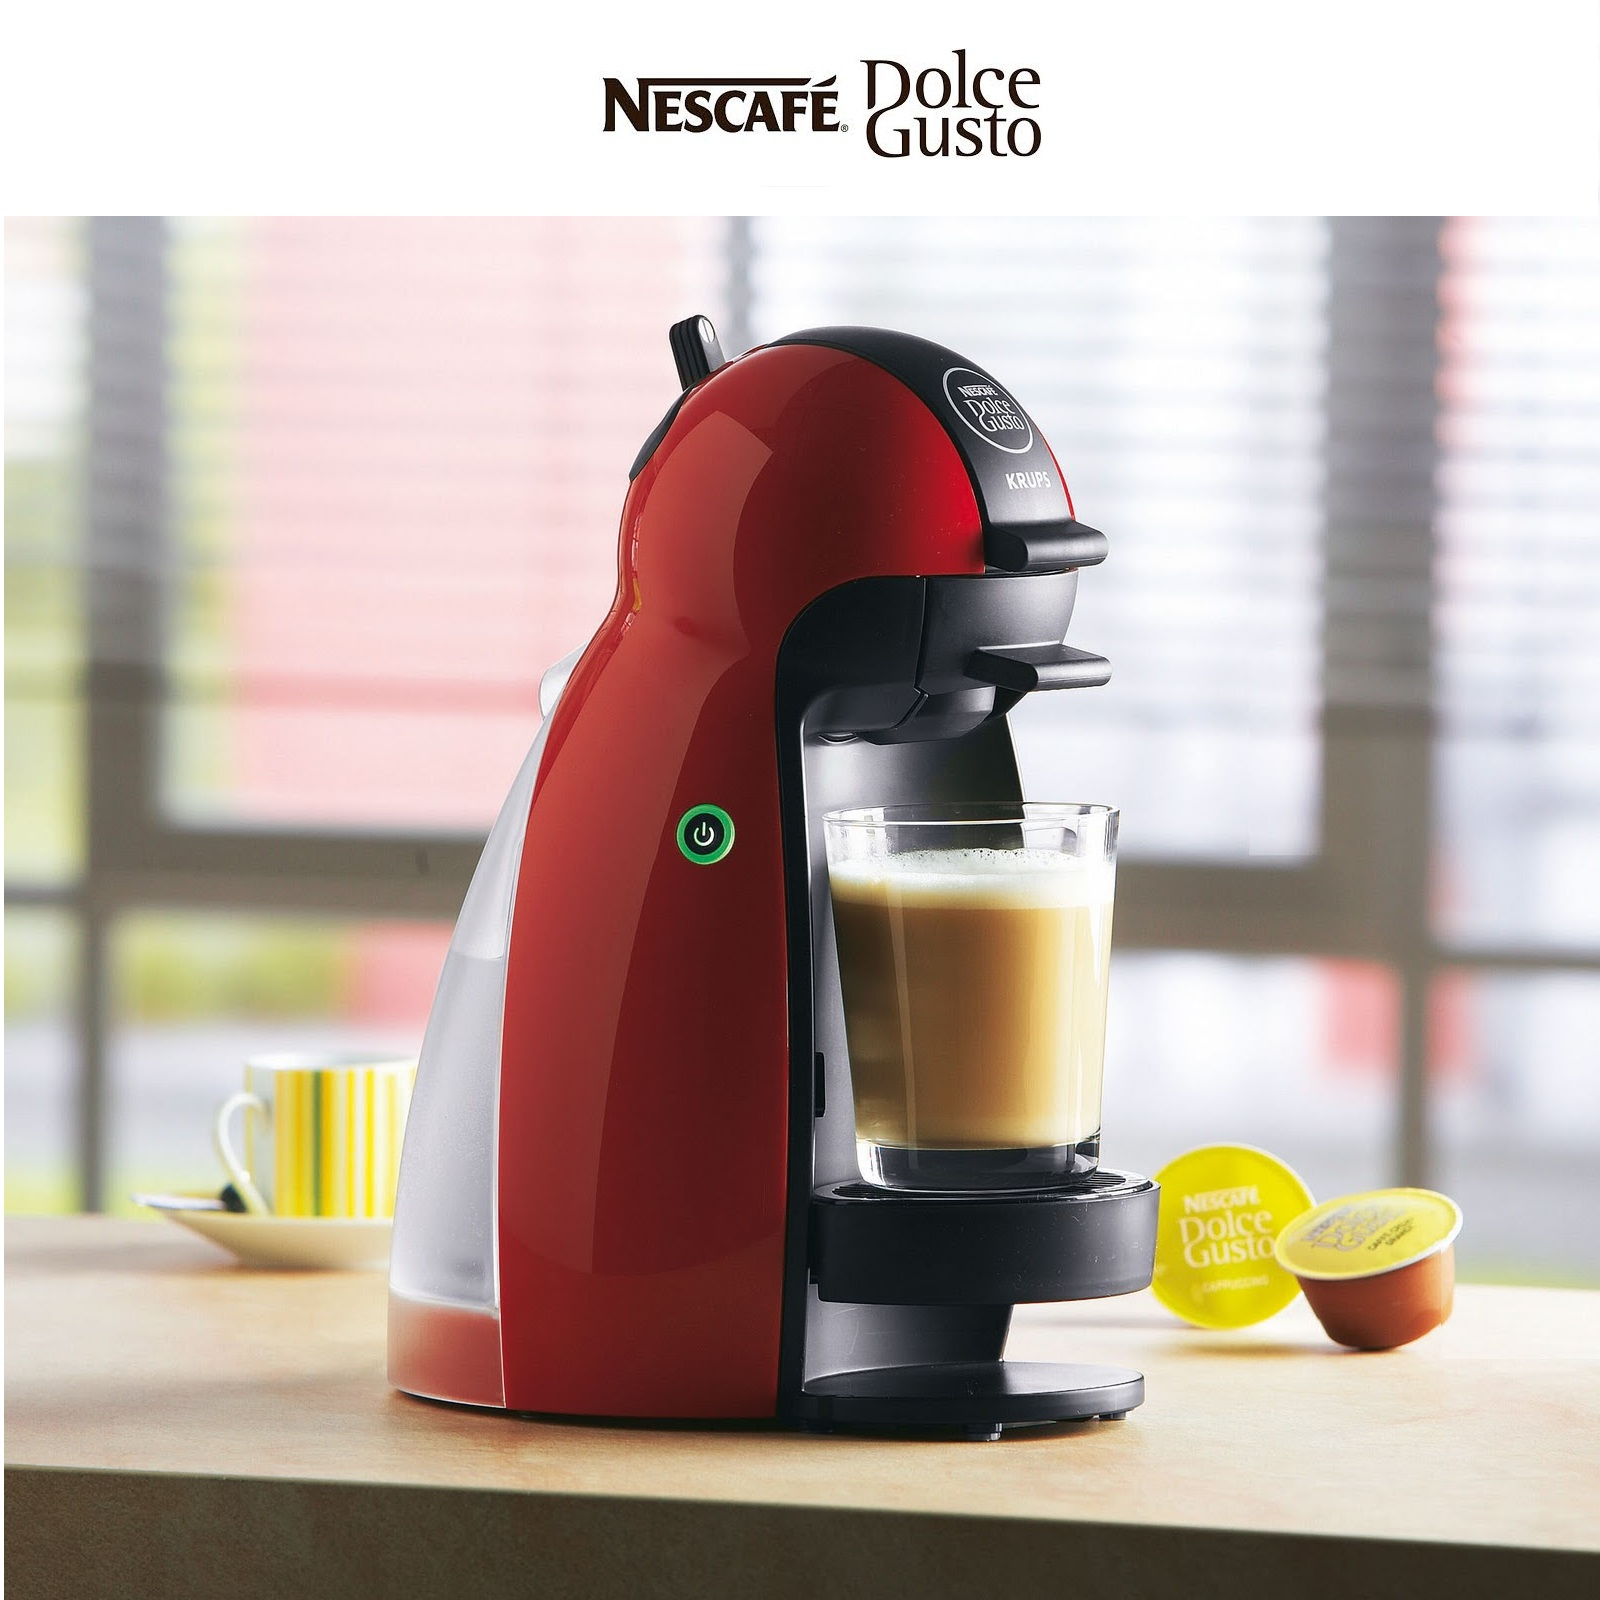 krups nescafe dolce gusto piccolo red multi drink coffee machine kp100640 a. Black Bedroom Furniture Sets. Home Design Ideas